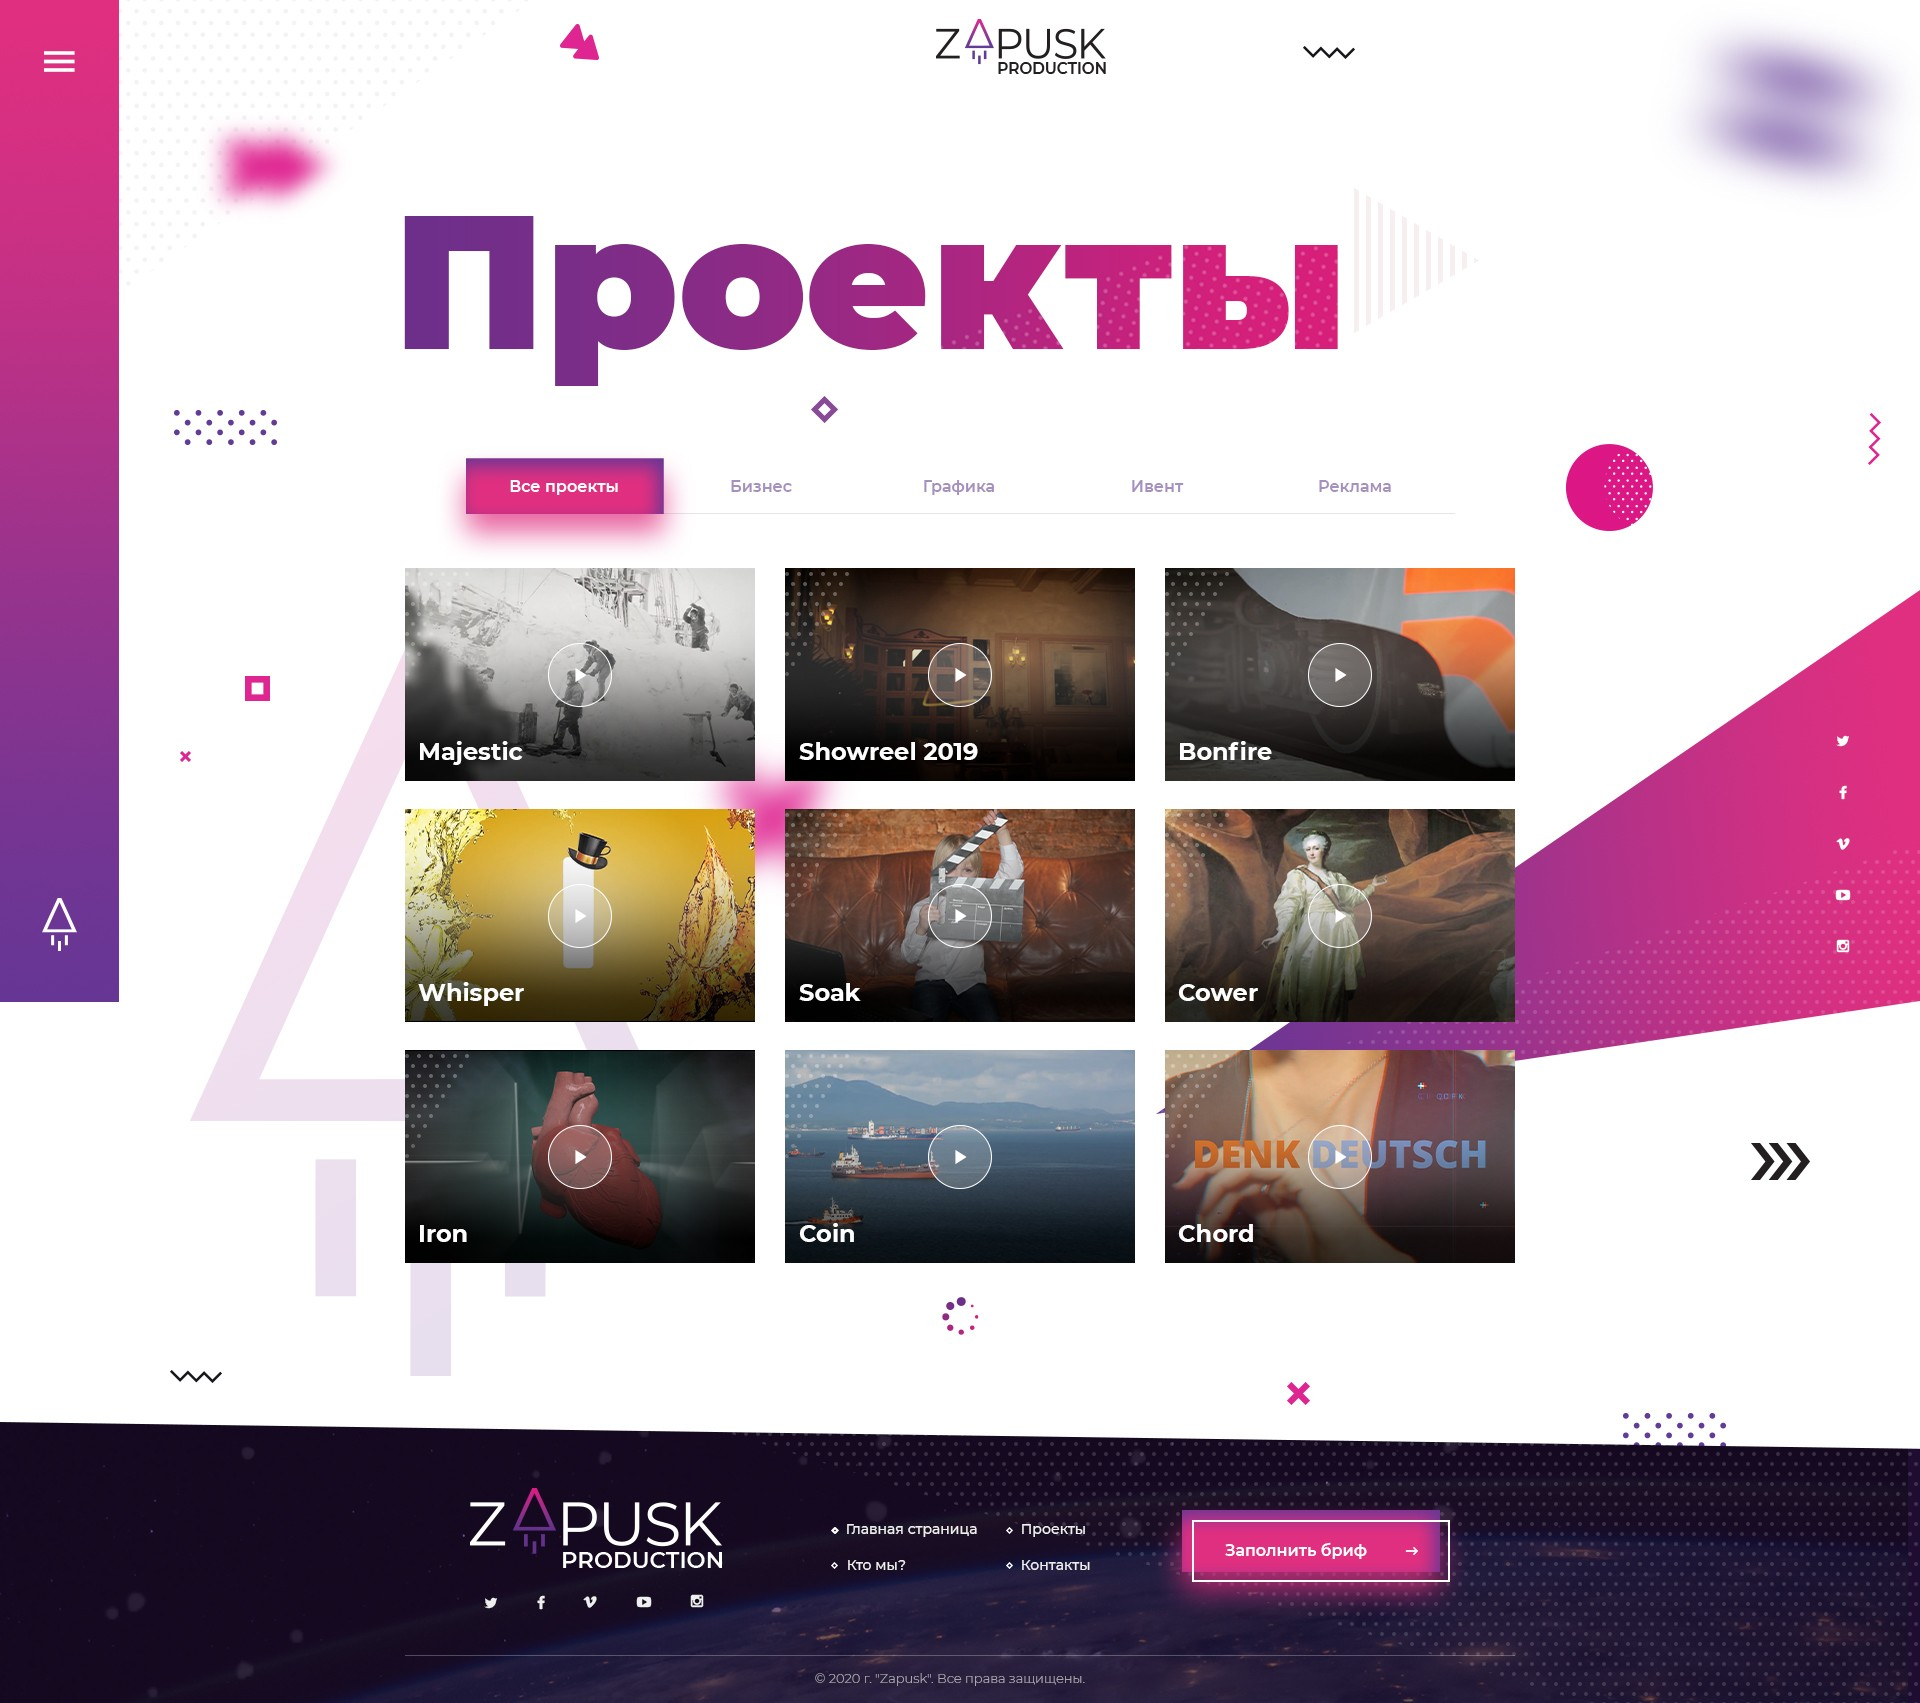 Zapusk_03_Our_Projects_1.1